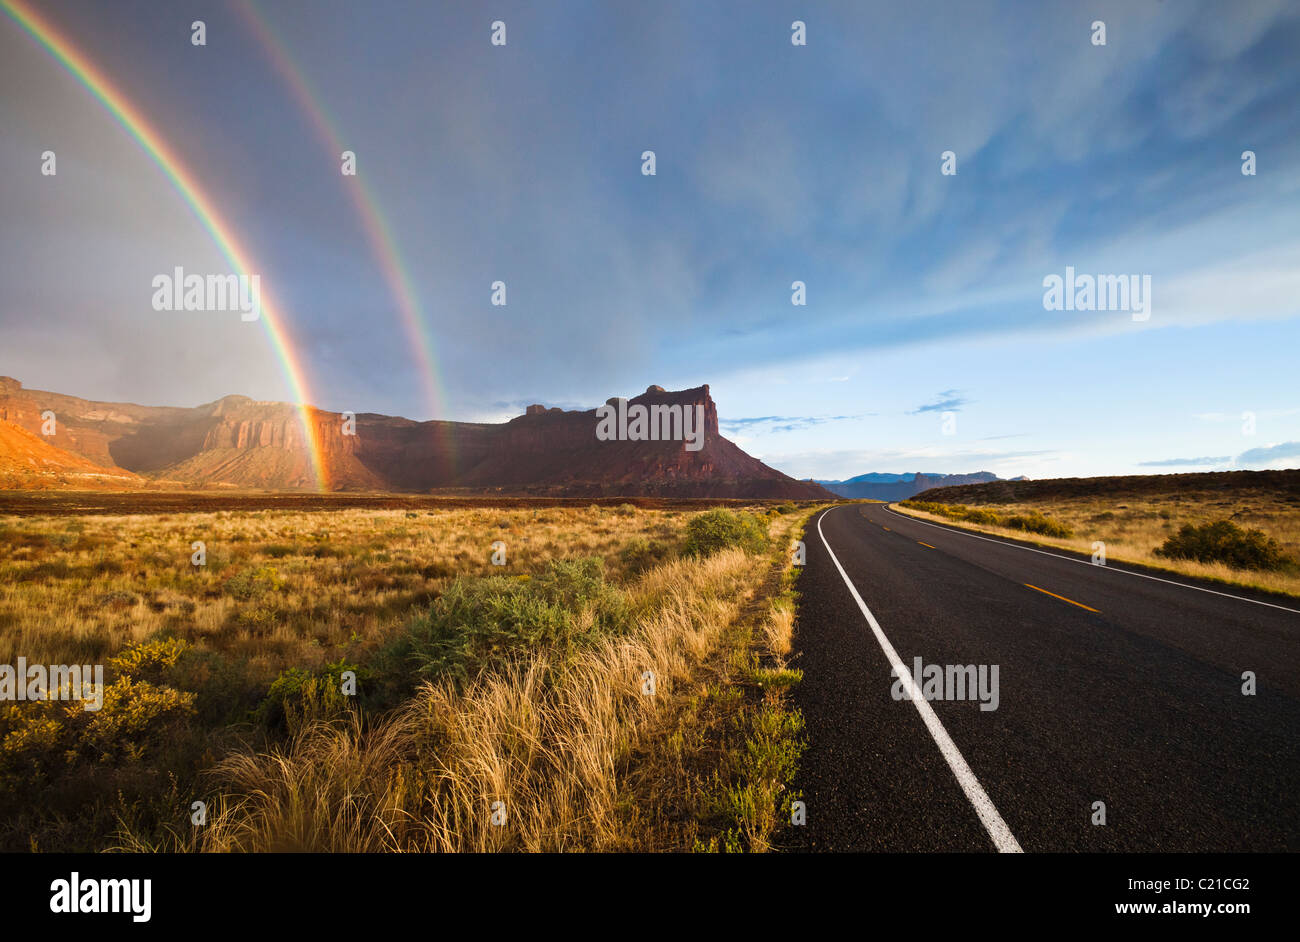 Highway 211, mesas, and a rainbow in the desert of Southeast Utah, USA. - Stock Image